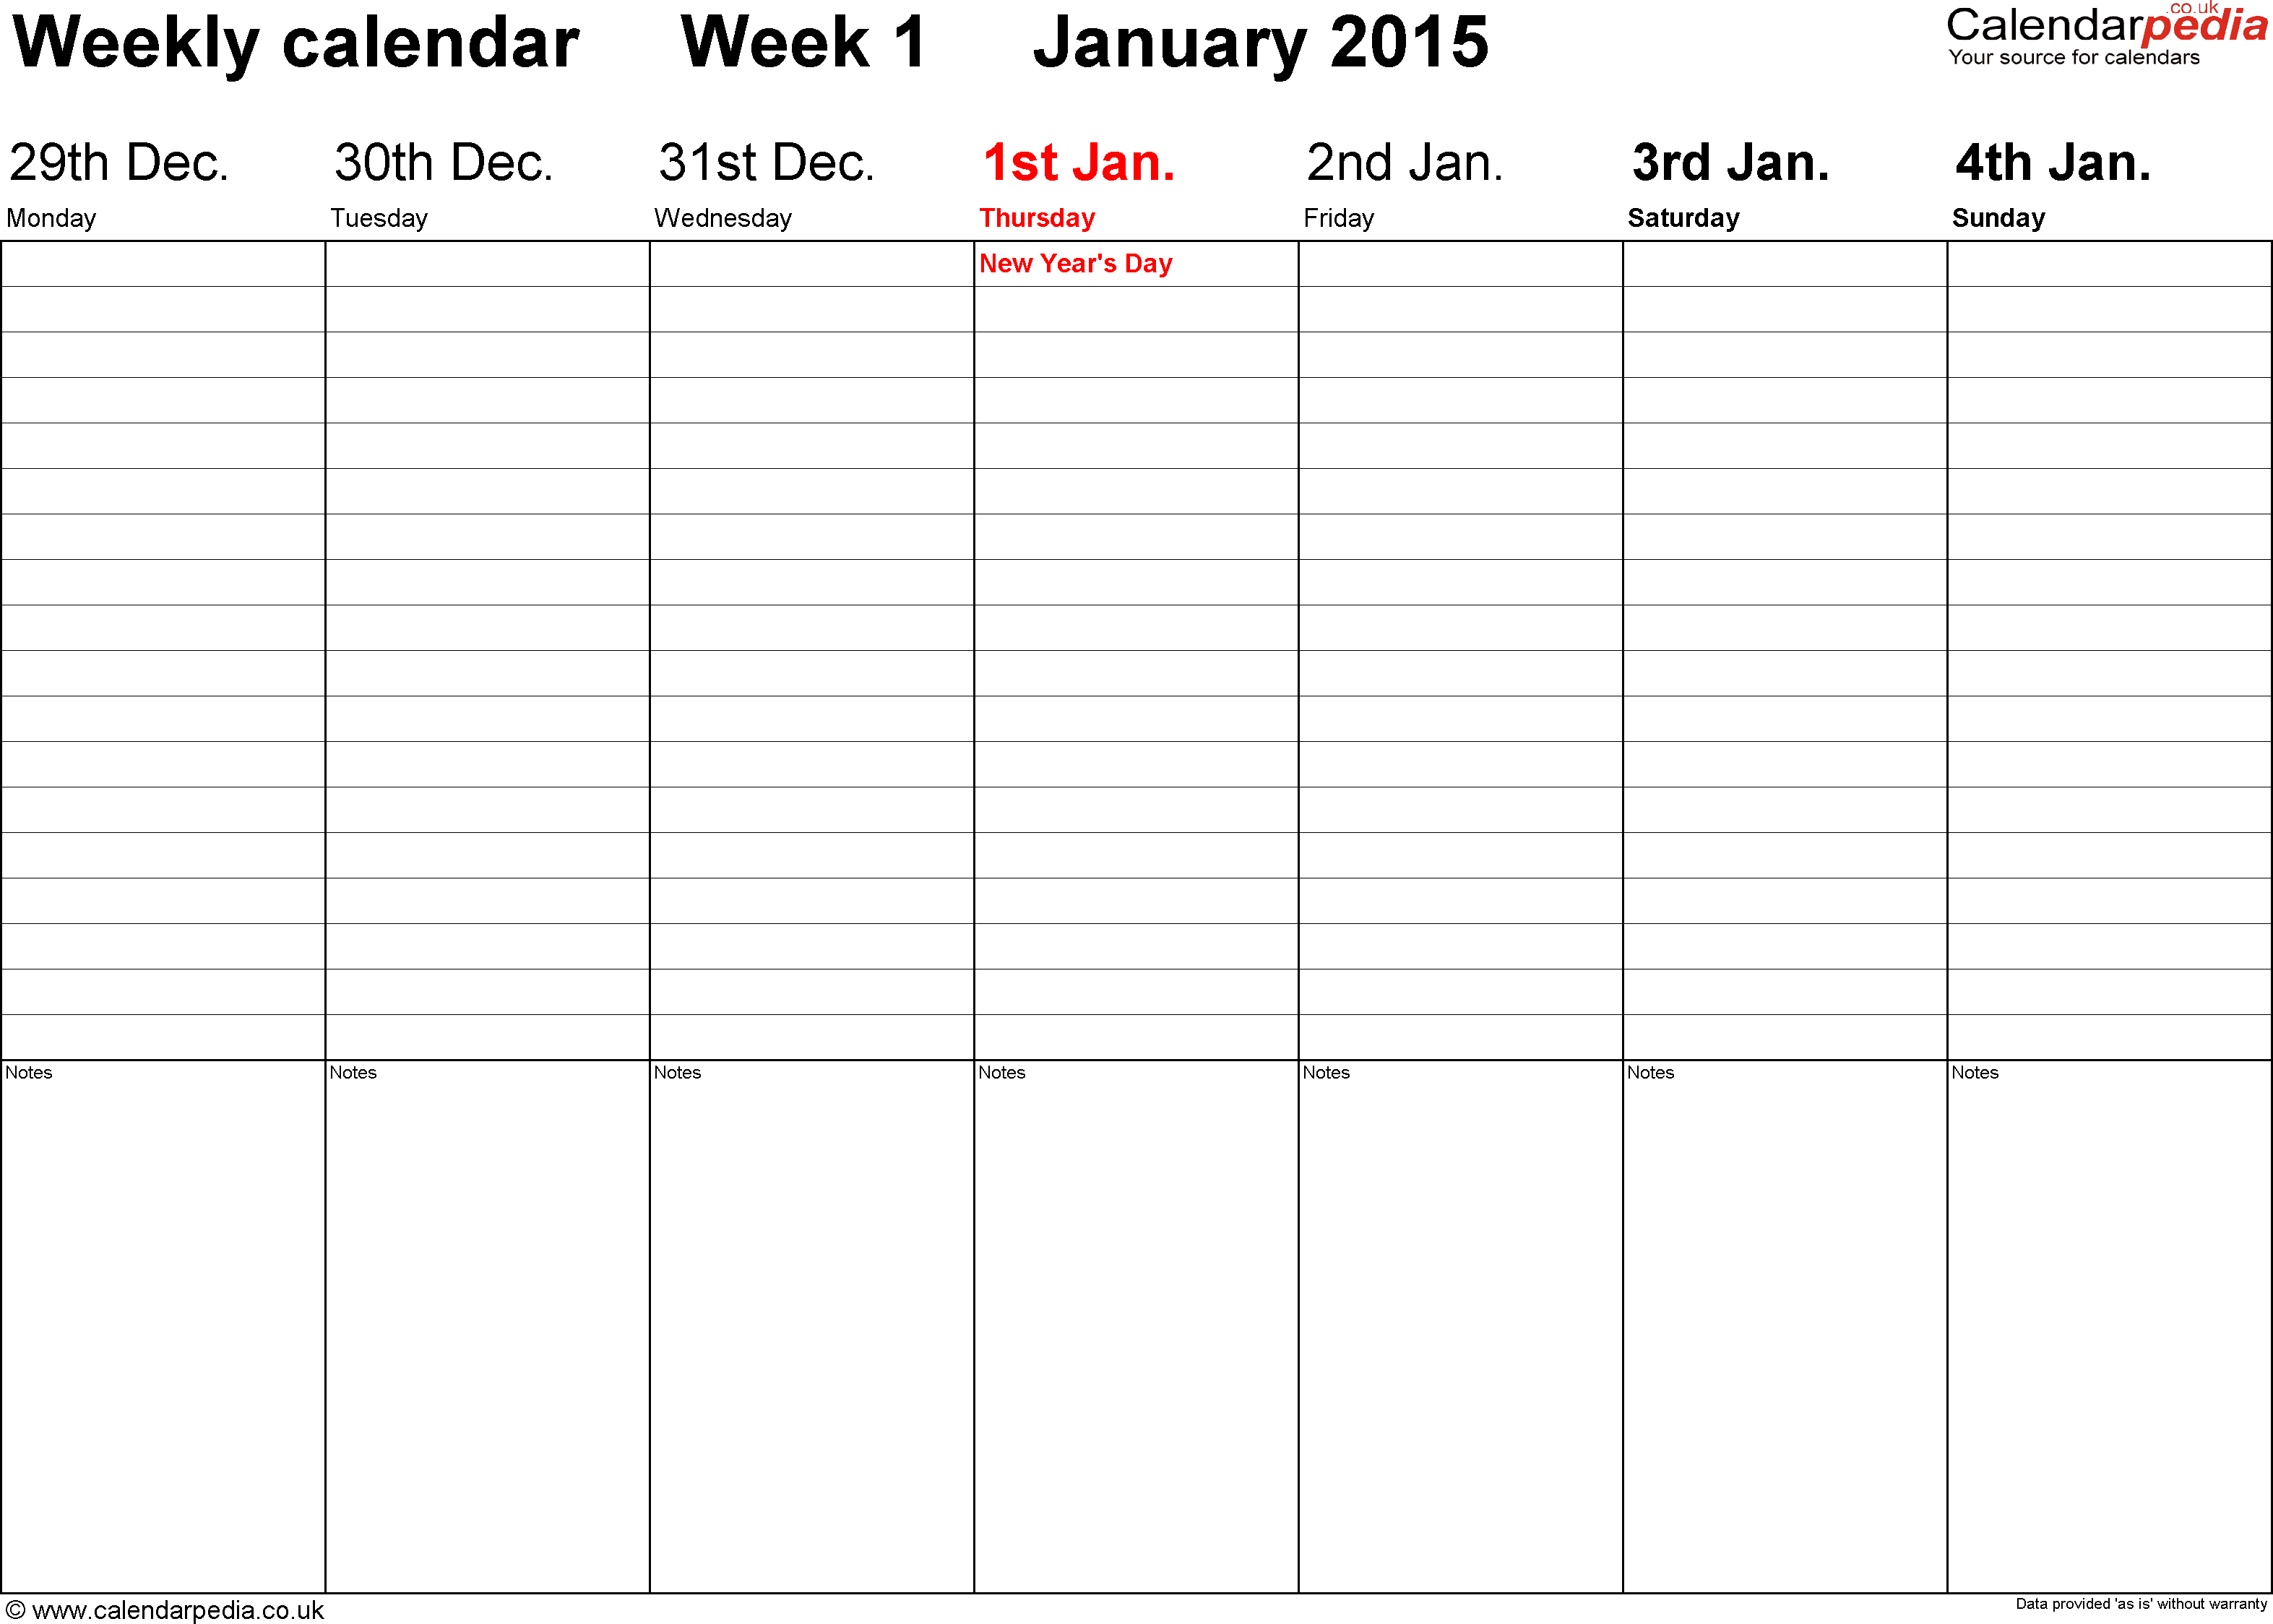 Word template 3: Weekly calendar 2015, landscape orientation, 53 pages (1 calendar week on 1 page), no time markings